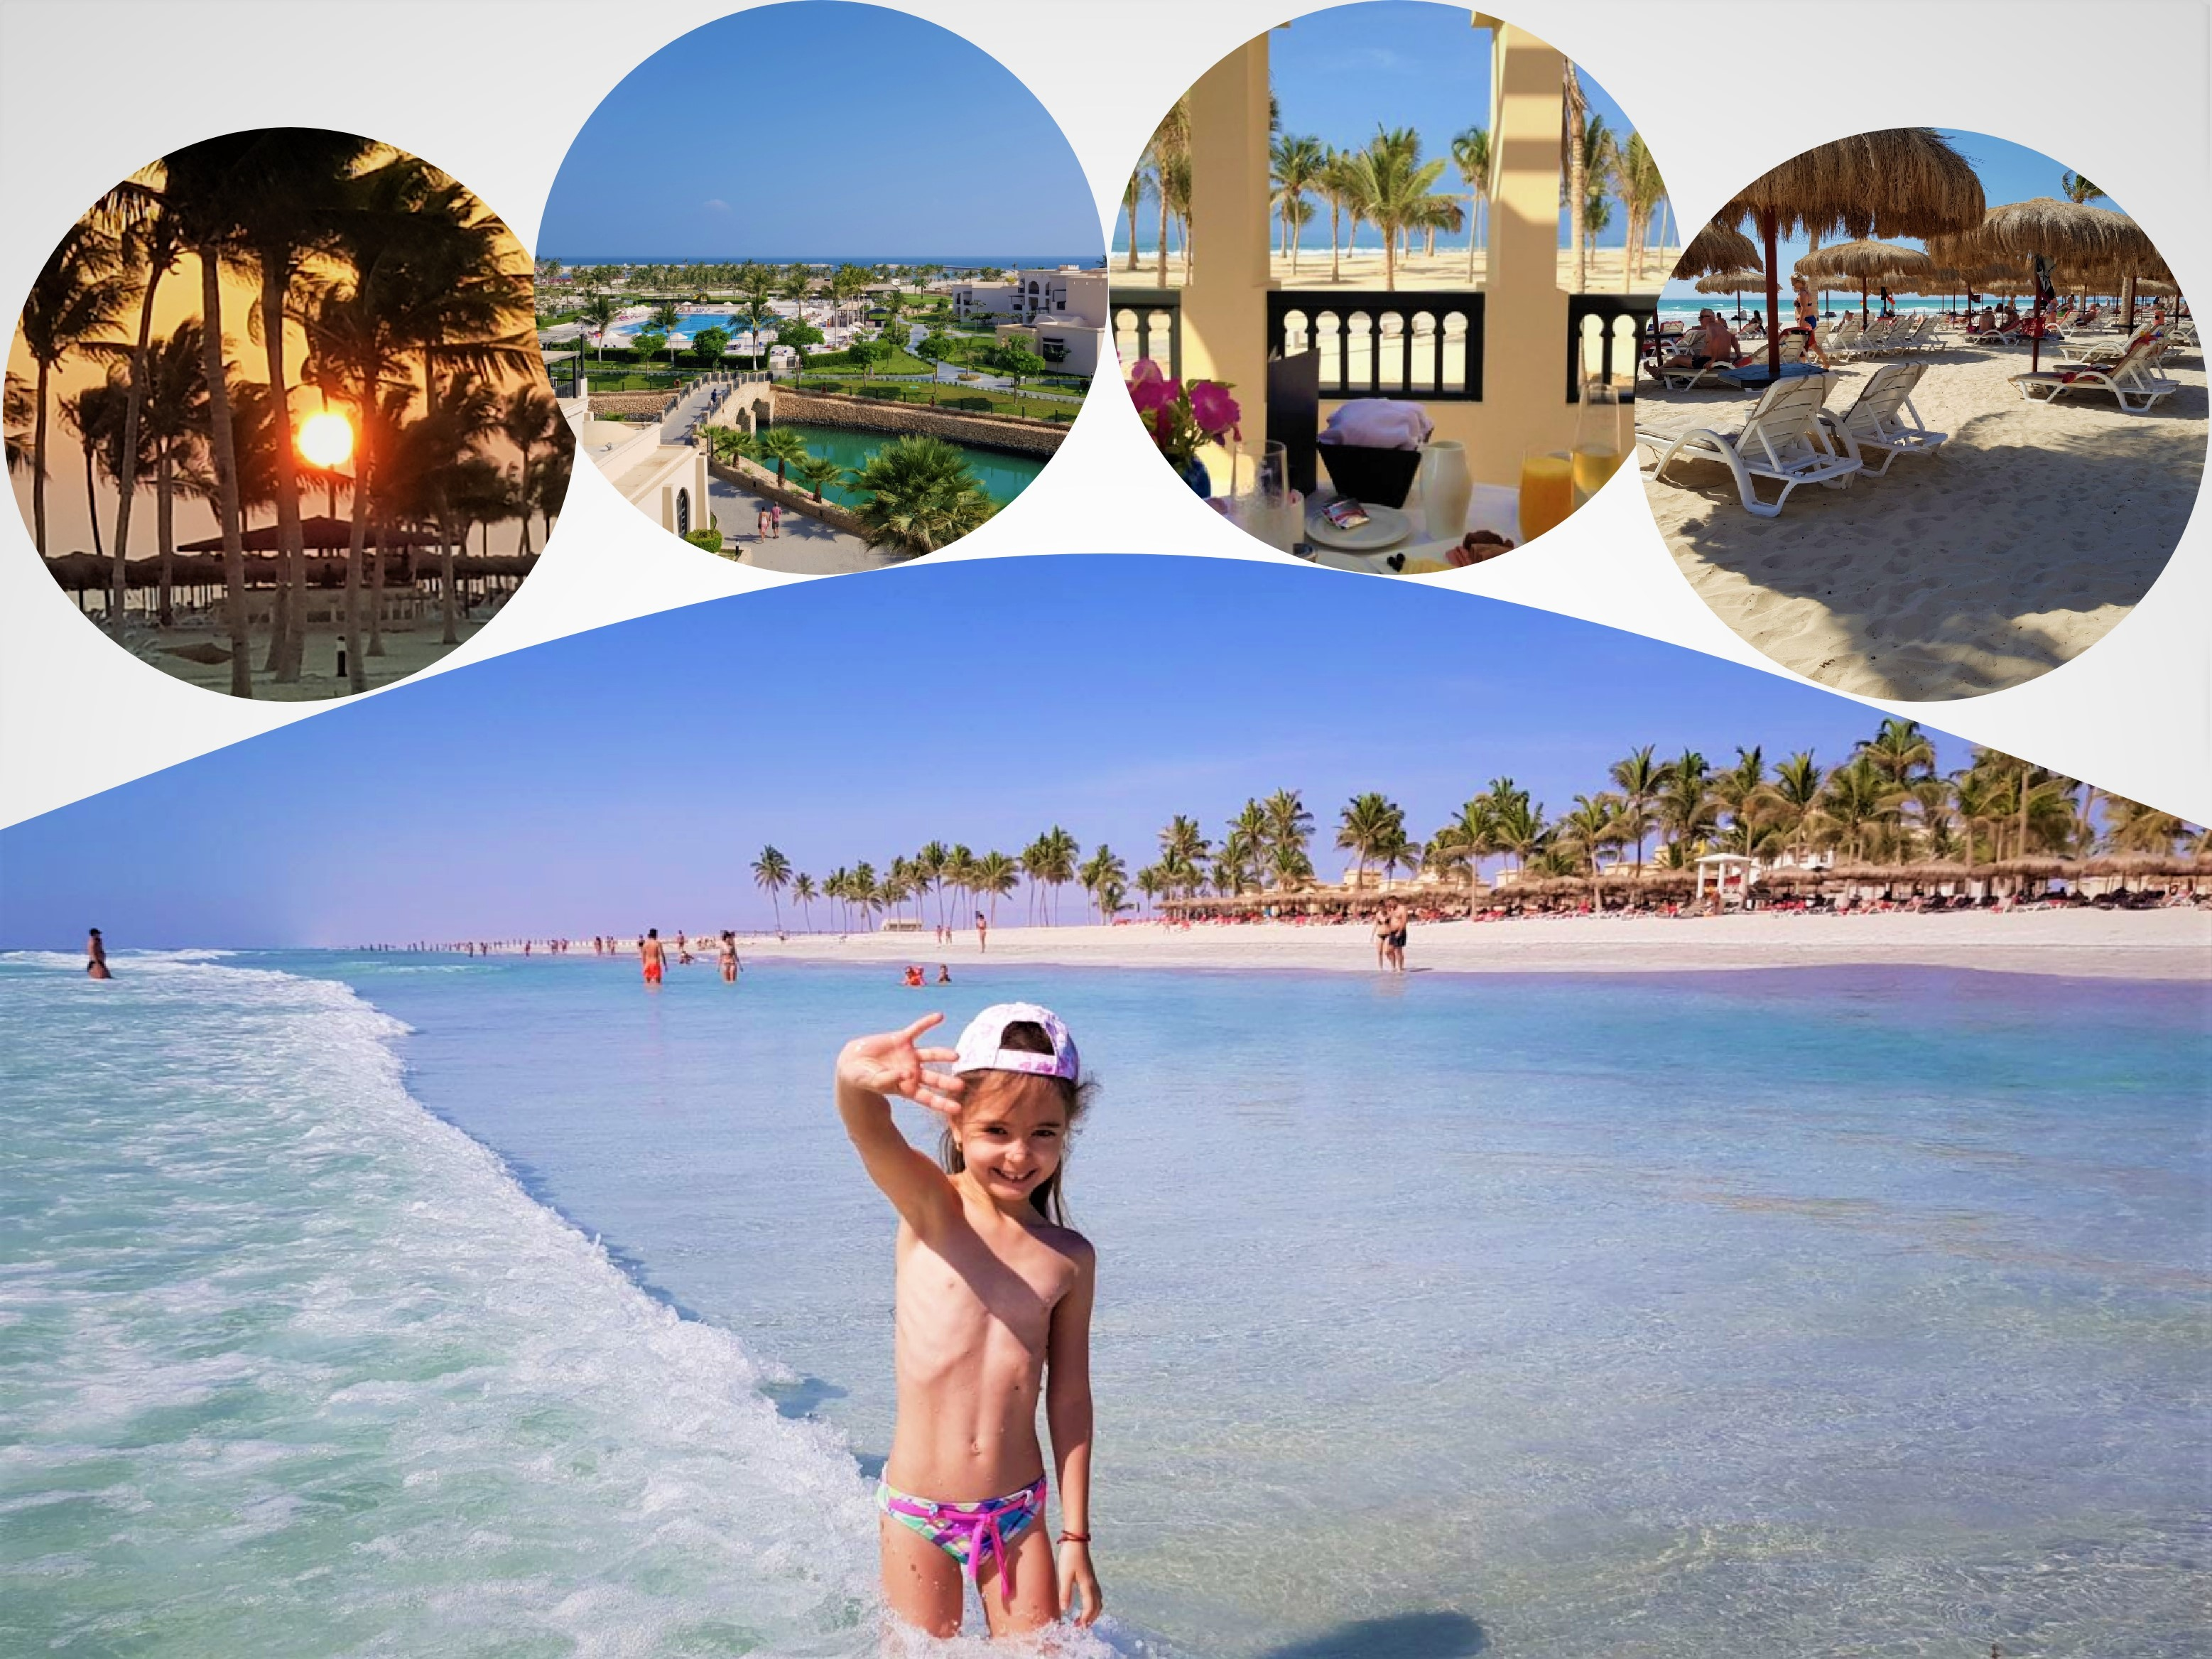 http://www.travelsys.sk/public/users/paxtour/images/fotogaleria_hotel/l_oman003.jpg